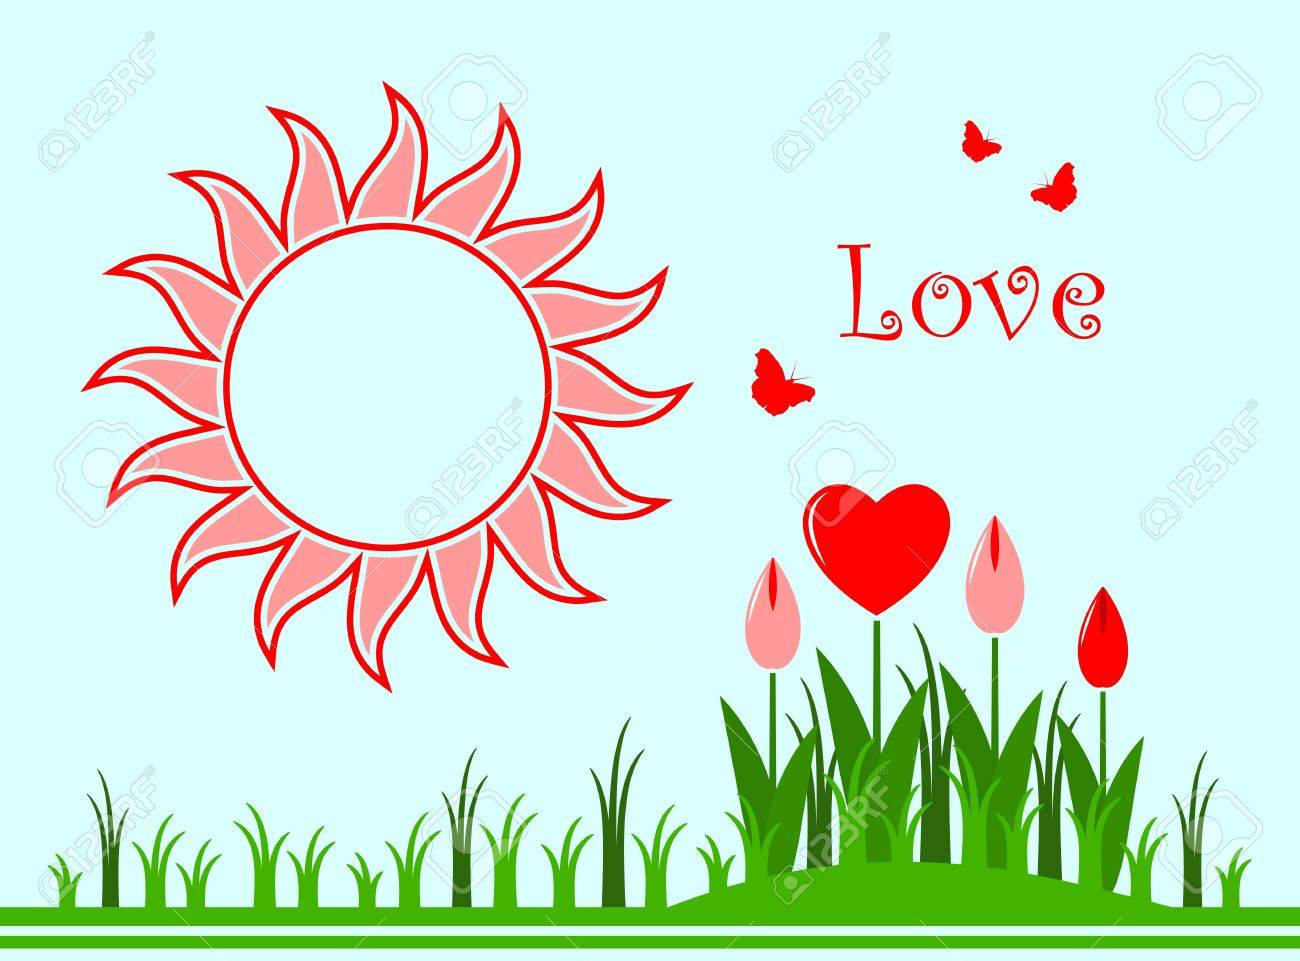 vector background with heart flowers in grass, sun and butterflies Stock Vector - 11765152